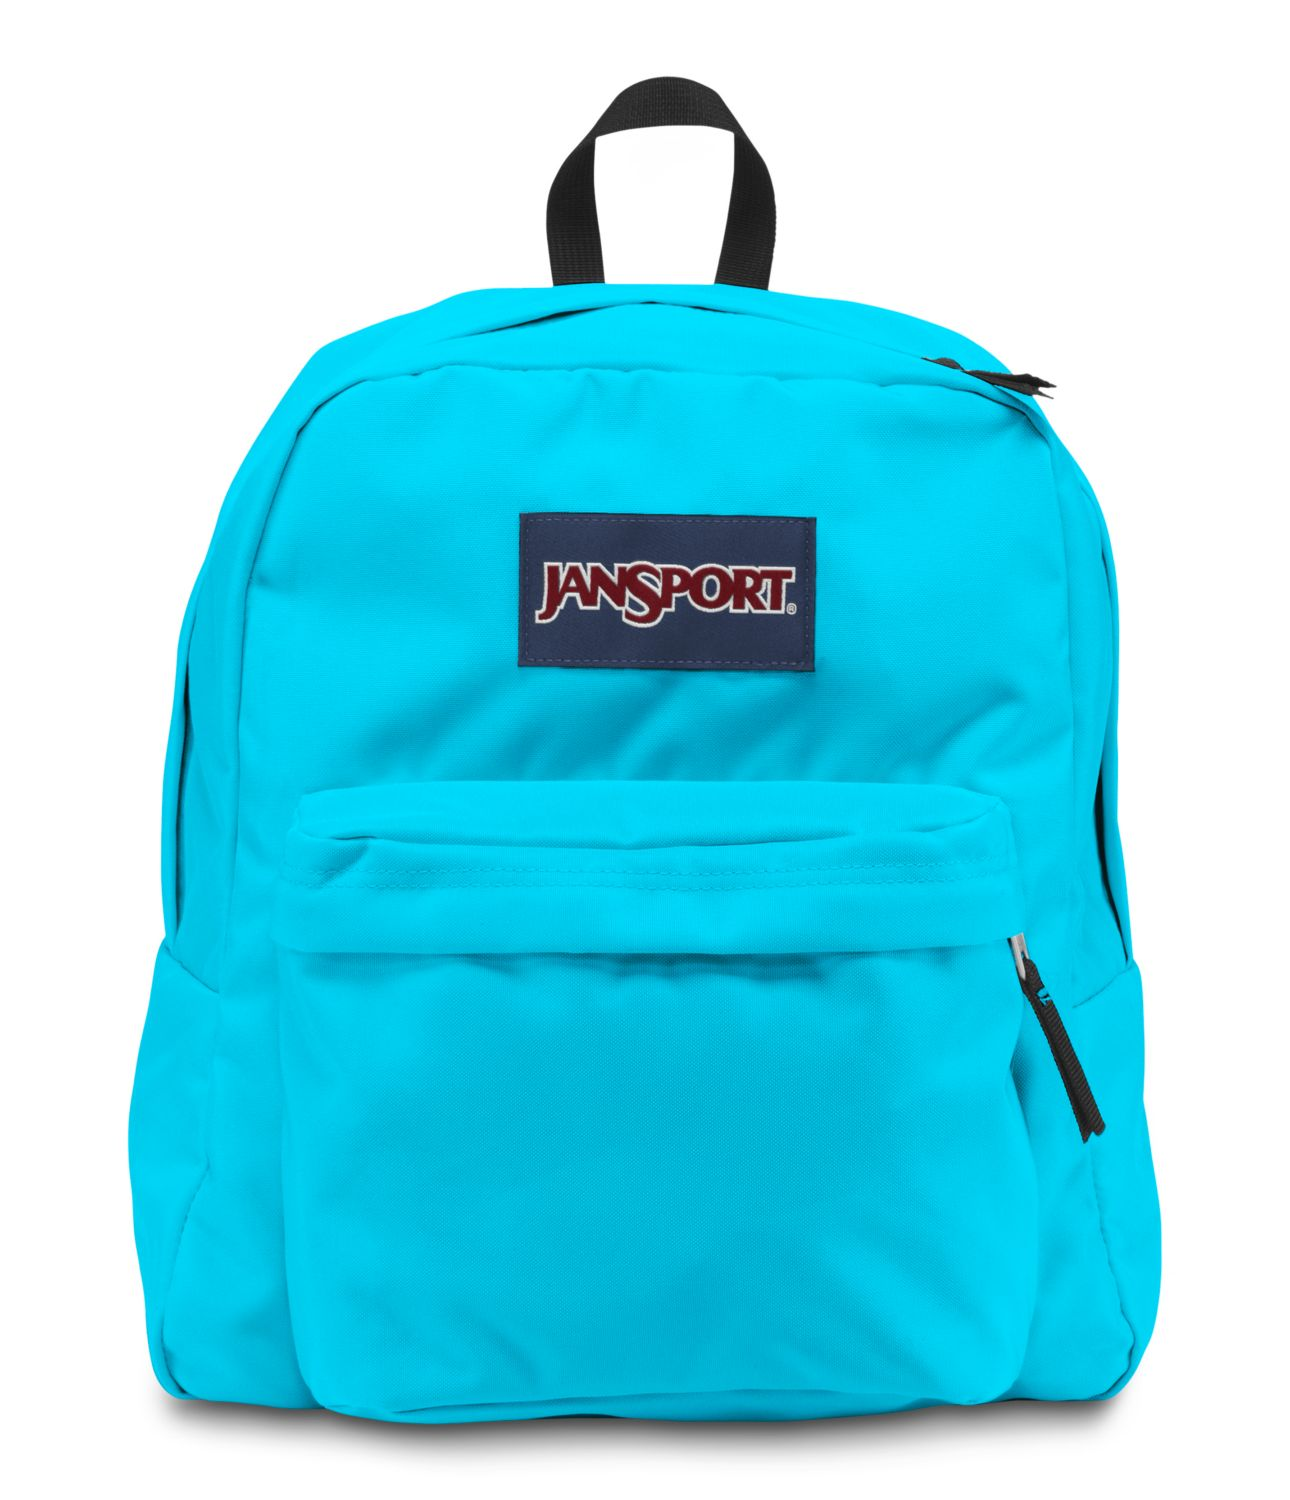 JanSport Spring Break School Backpack - Mammoth Blue